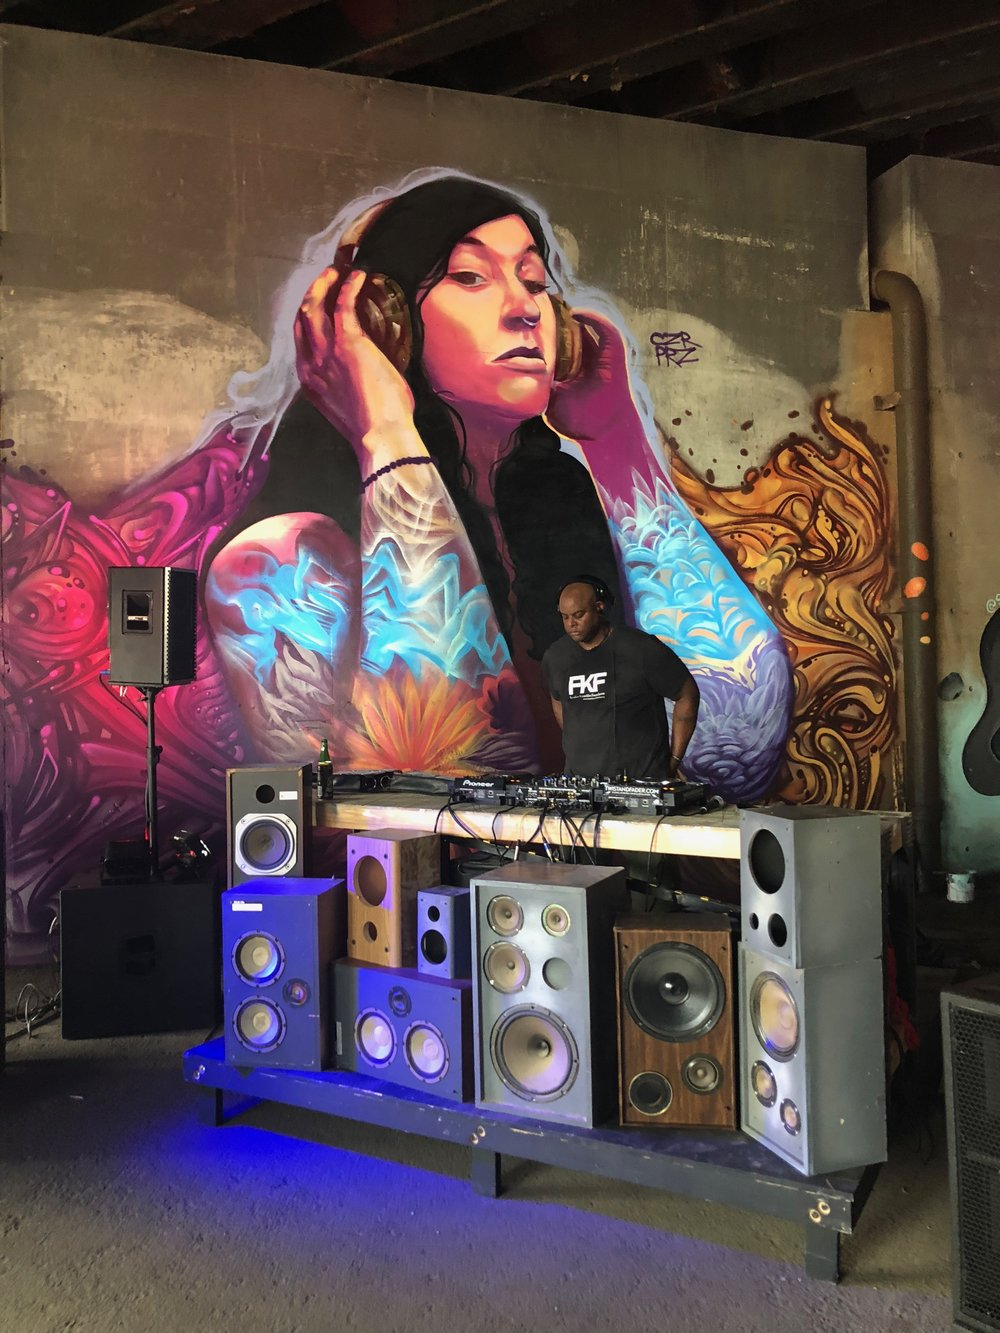 GOOD VIBRATIONS  Frankie Knuckles Tribute Celebration 16' x 13'  The BLine Chicago, IL  2018